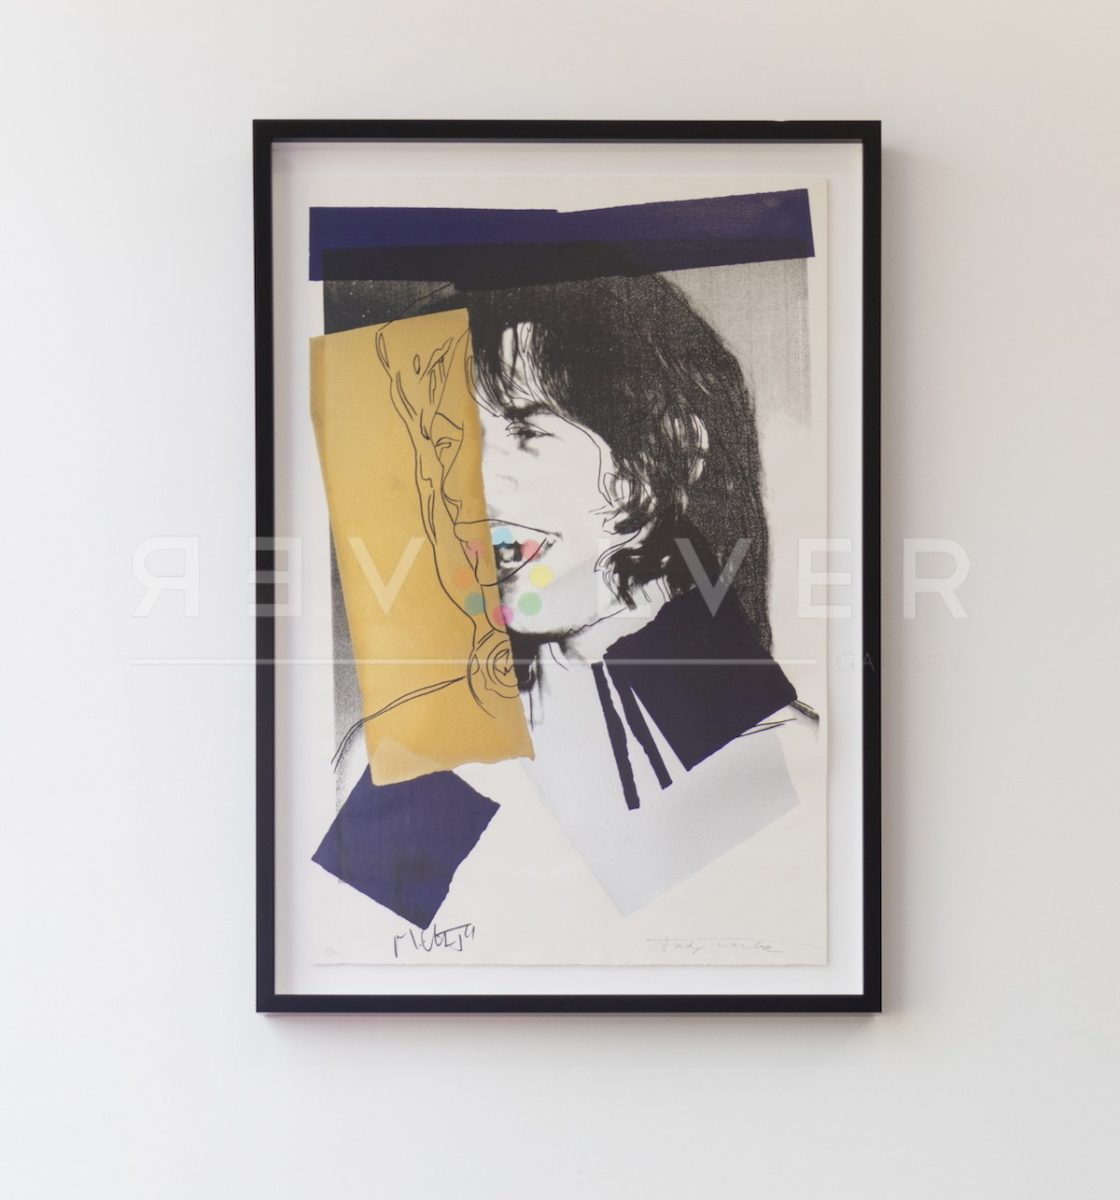 Mick Jagger 142 screenprint framed and hanging on a white wall.